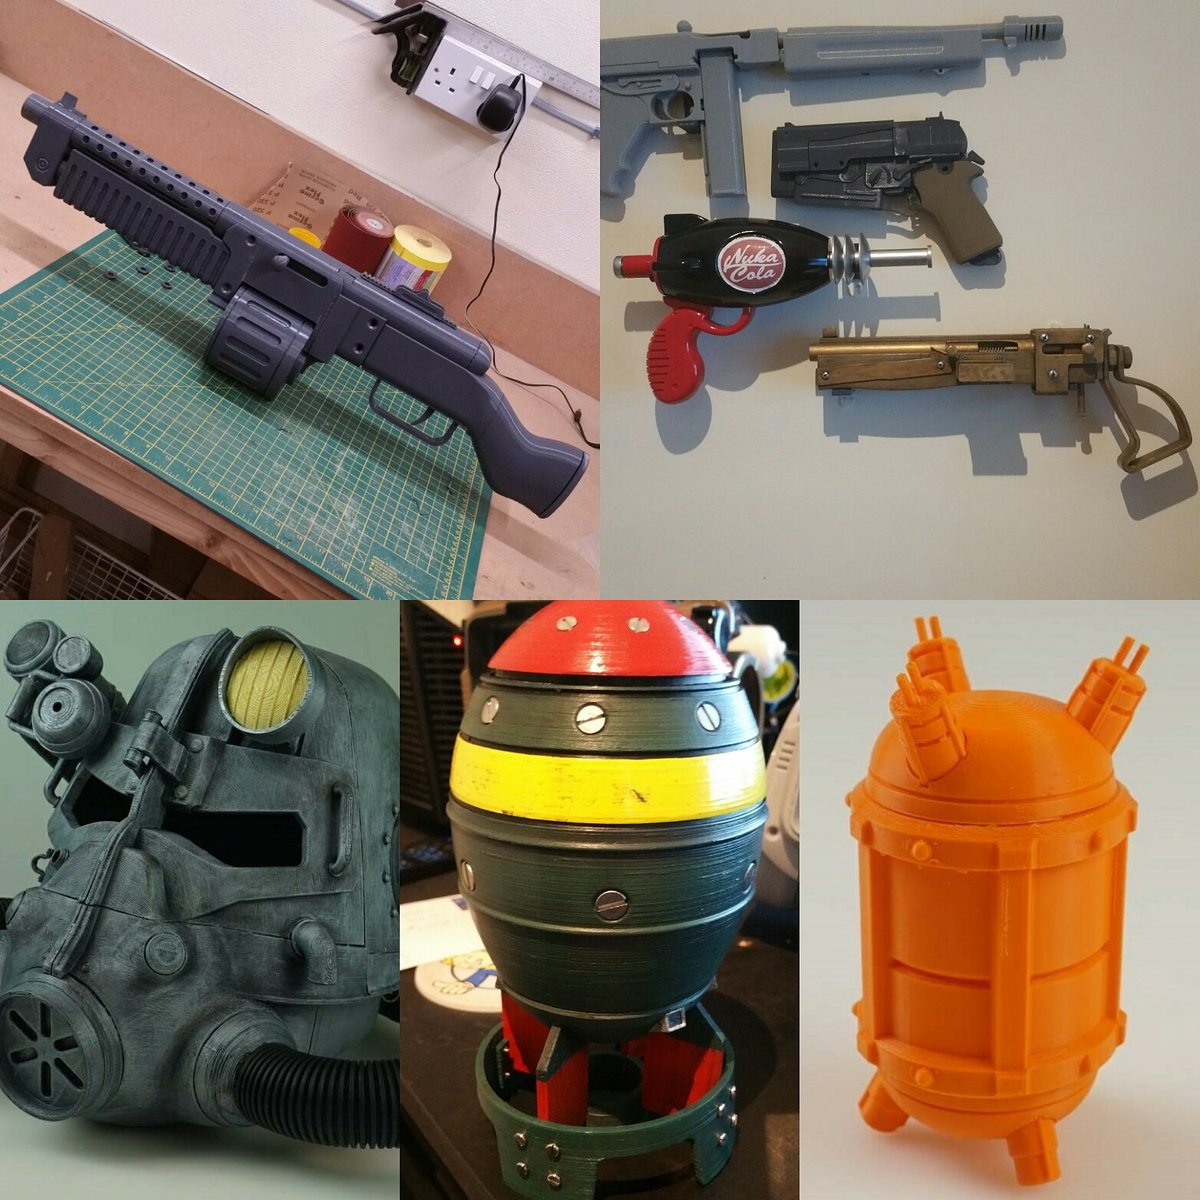 All my #3dprint 'ed #fallout props can now be bought through @MyMiniFactory, check it out. #Fallout4 #cosplay